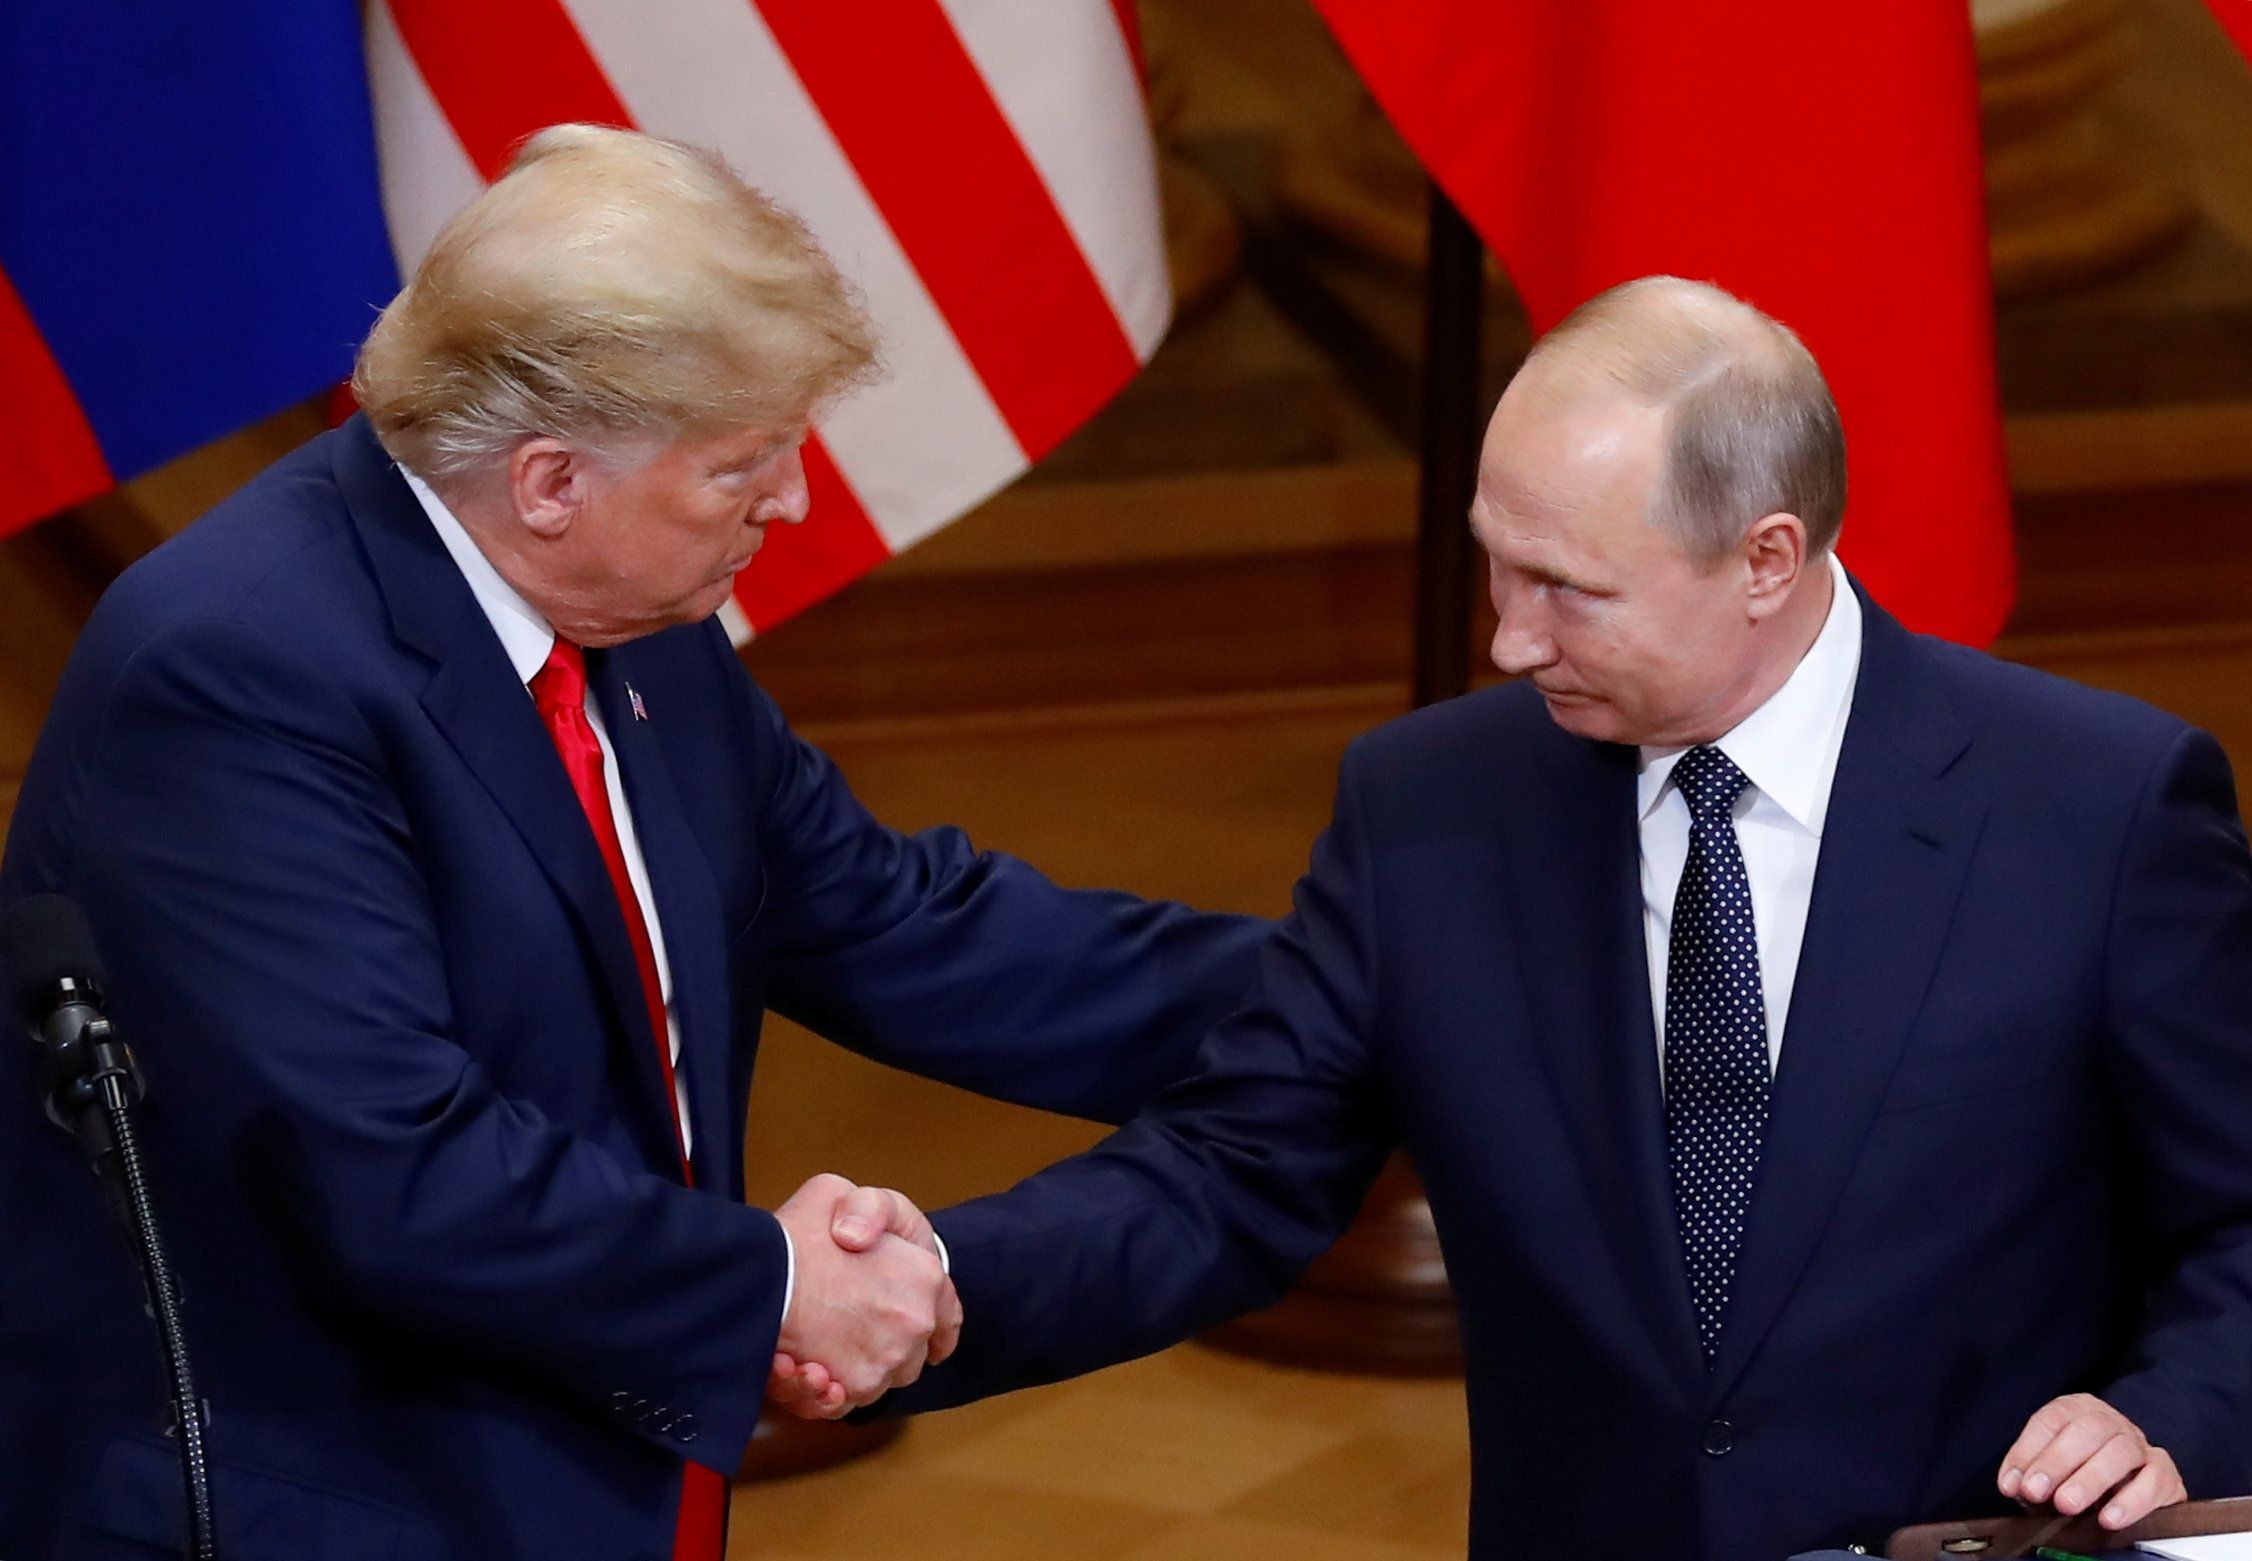 U.S. President Donald Trump and Russian President Vladimir Putin shake hands during a joint news conference in Helsinki on Ju